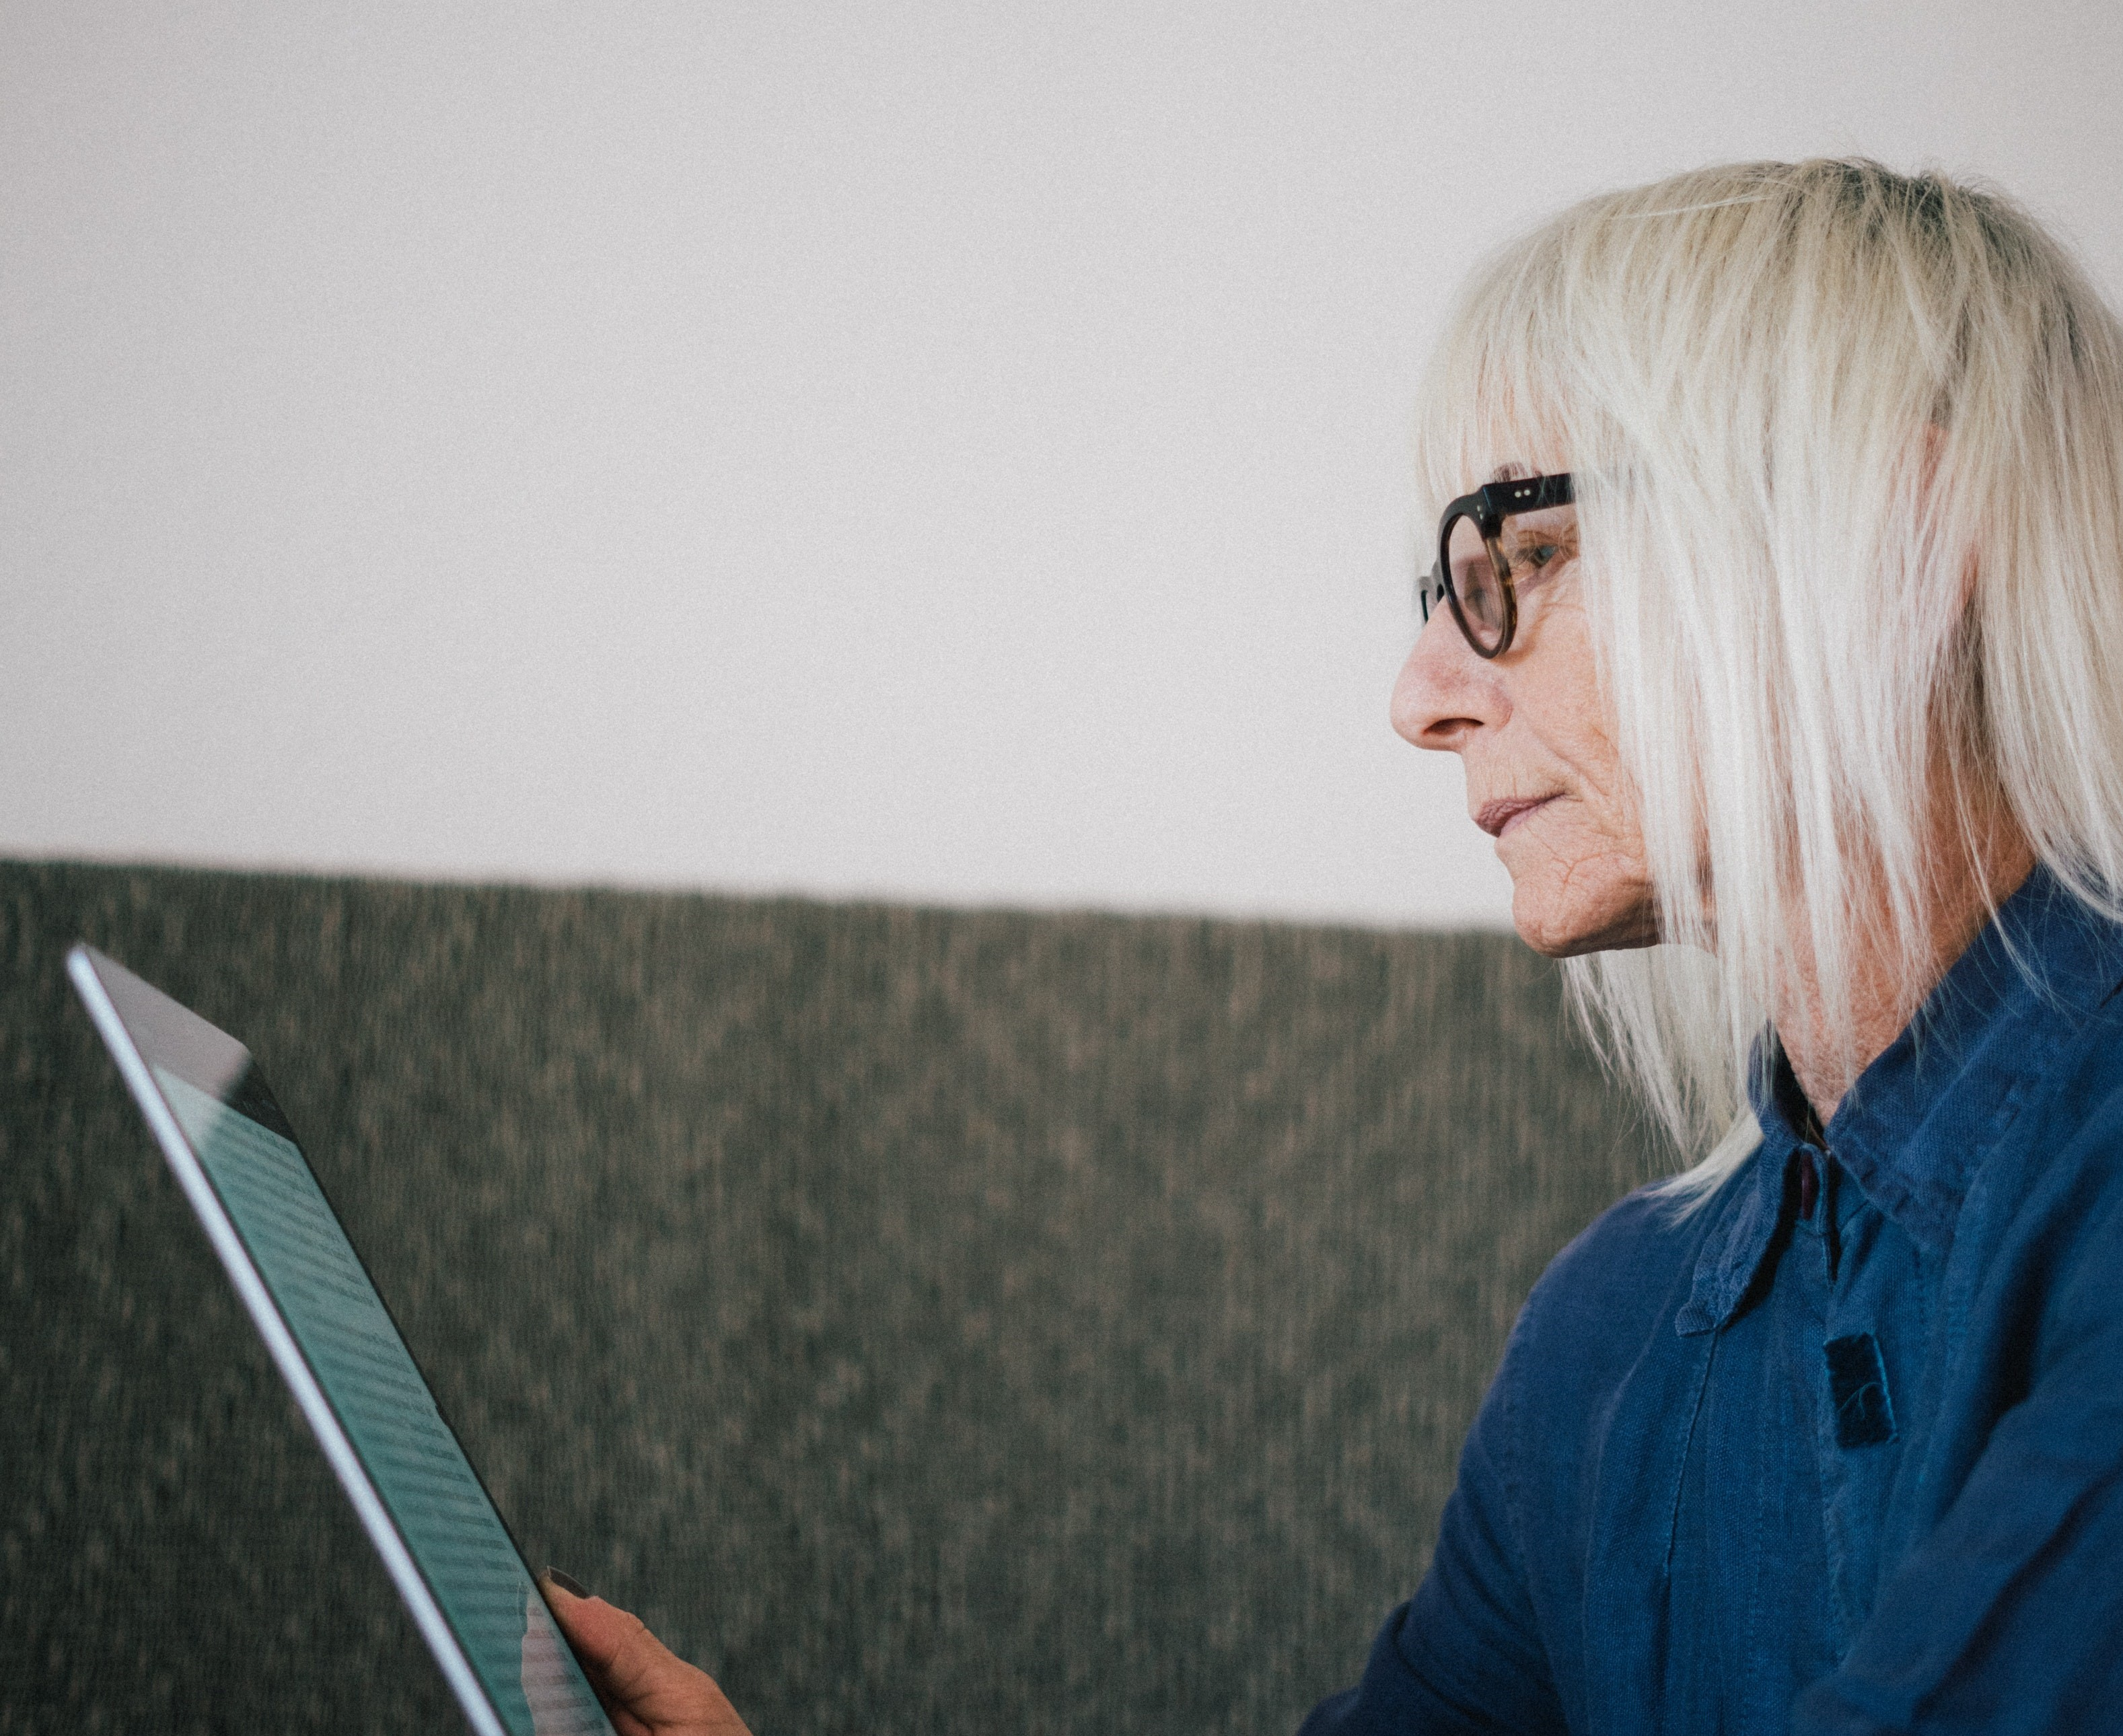 A woman with glasses and white hair looks at a tablet screen.